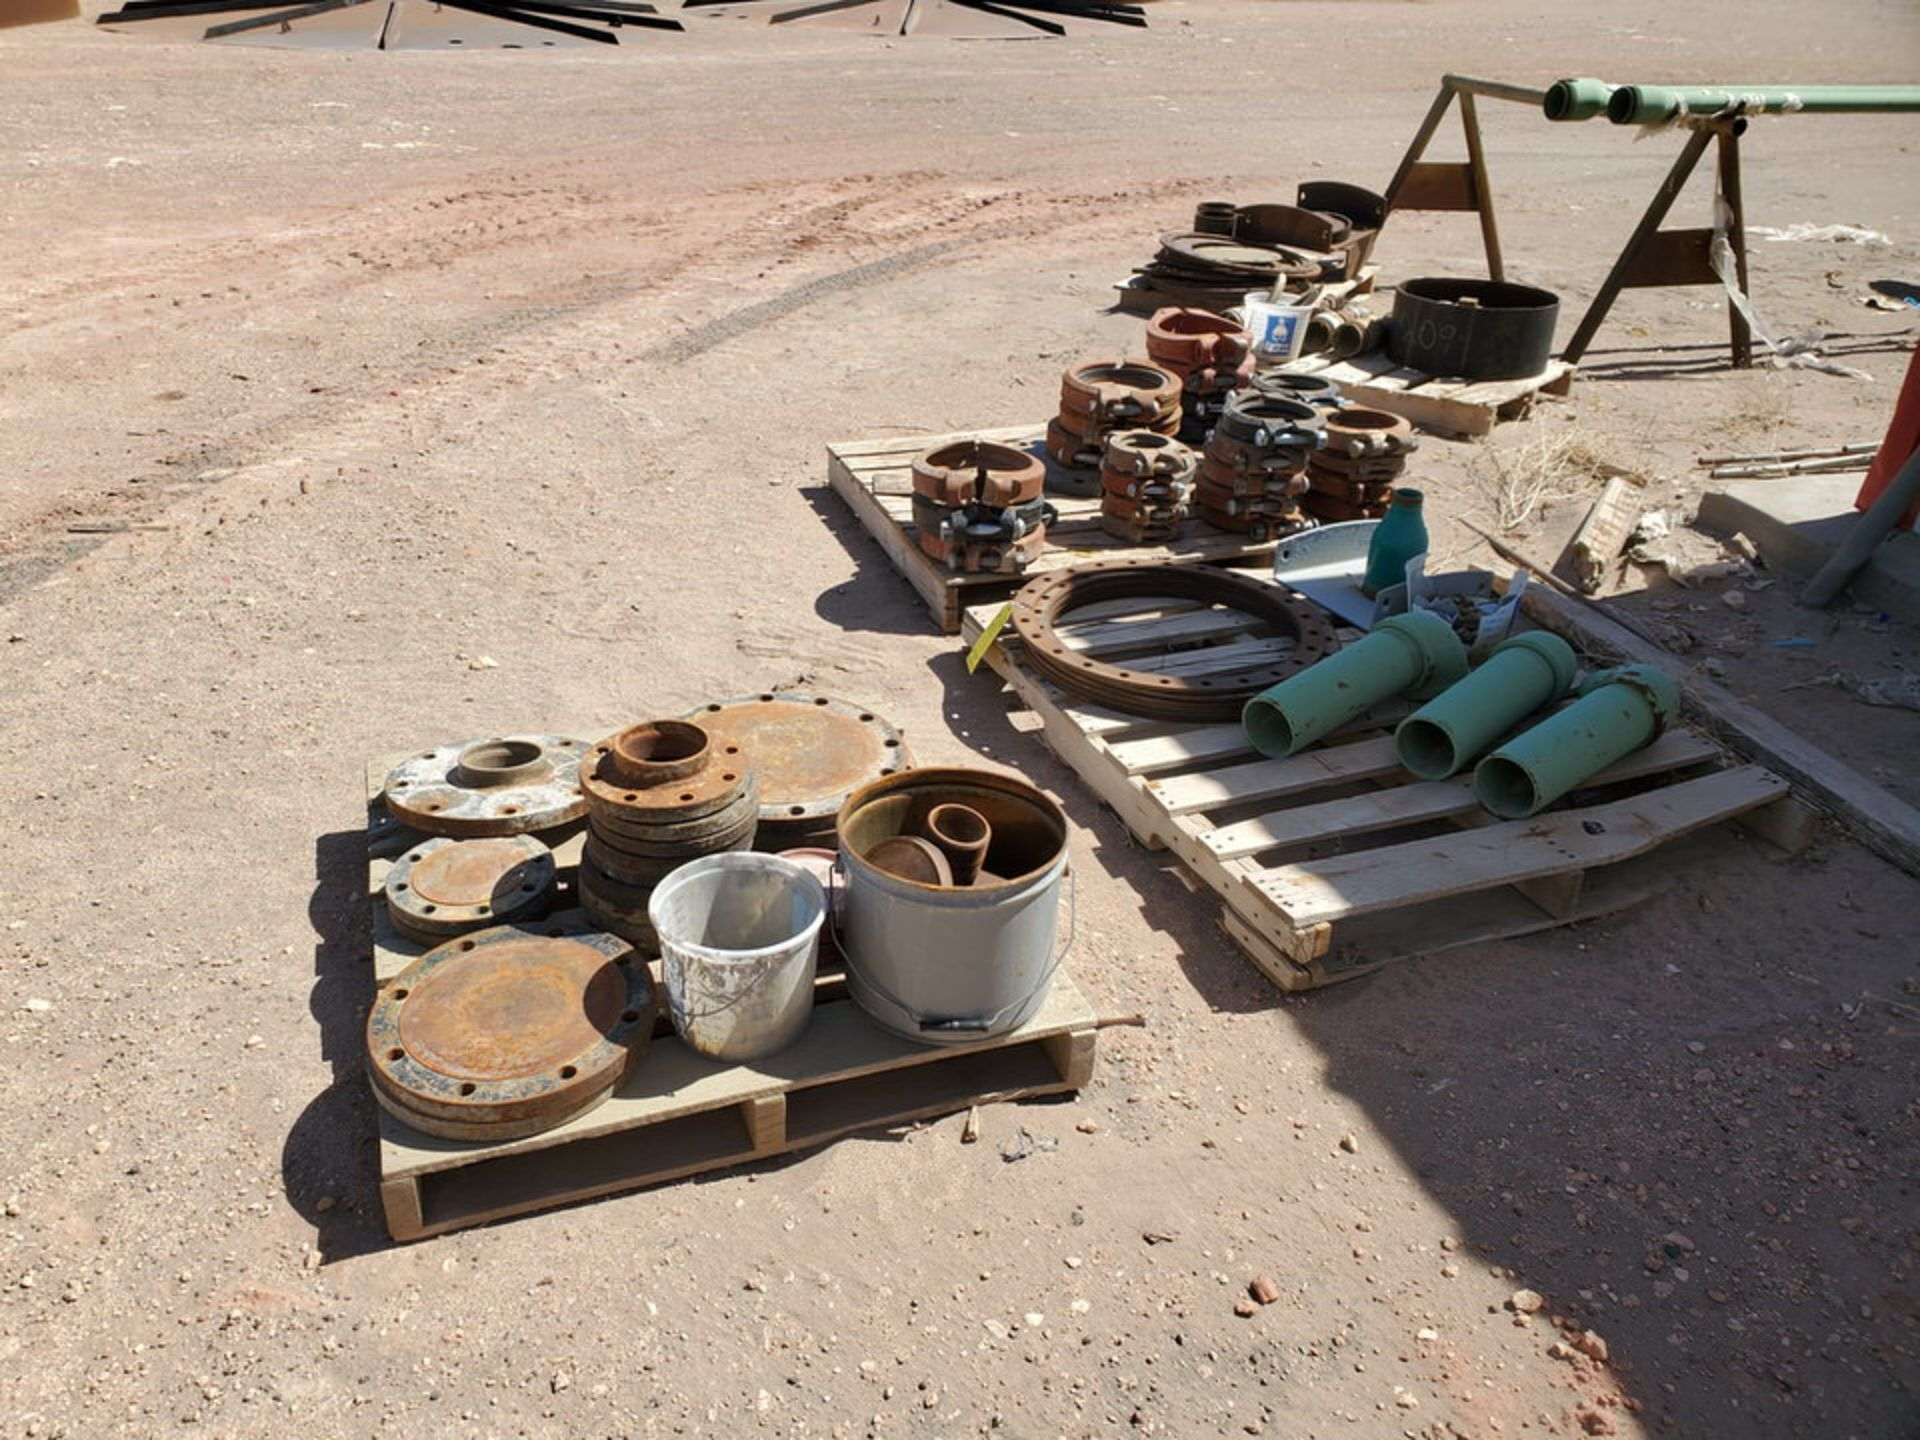 Assorted Fittings To Include But Not Limited To: Assorted Flanges, Caps, Couplings, etc.; Size